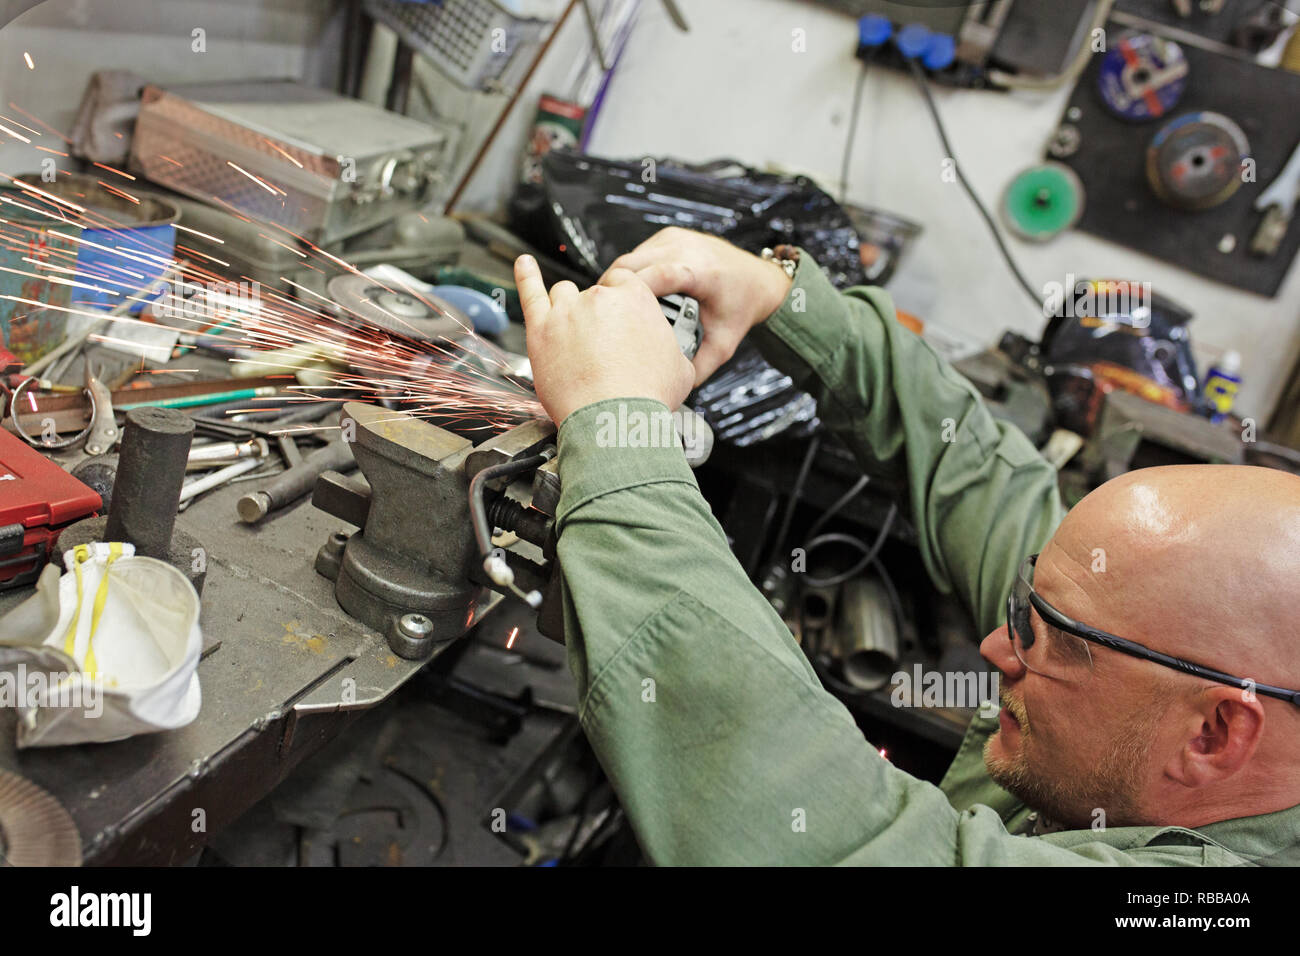 Heavy industry worker cutting steel with angle grinder at car service - Stock Image